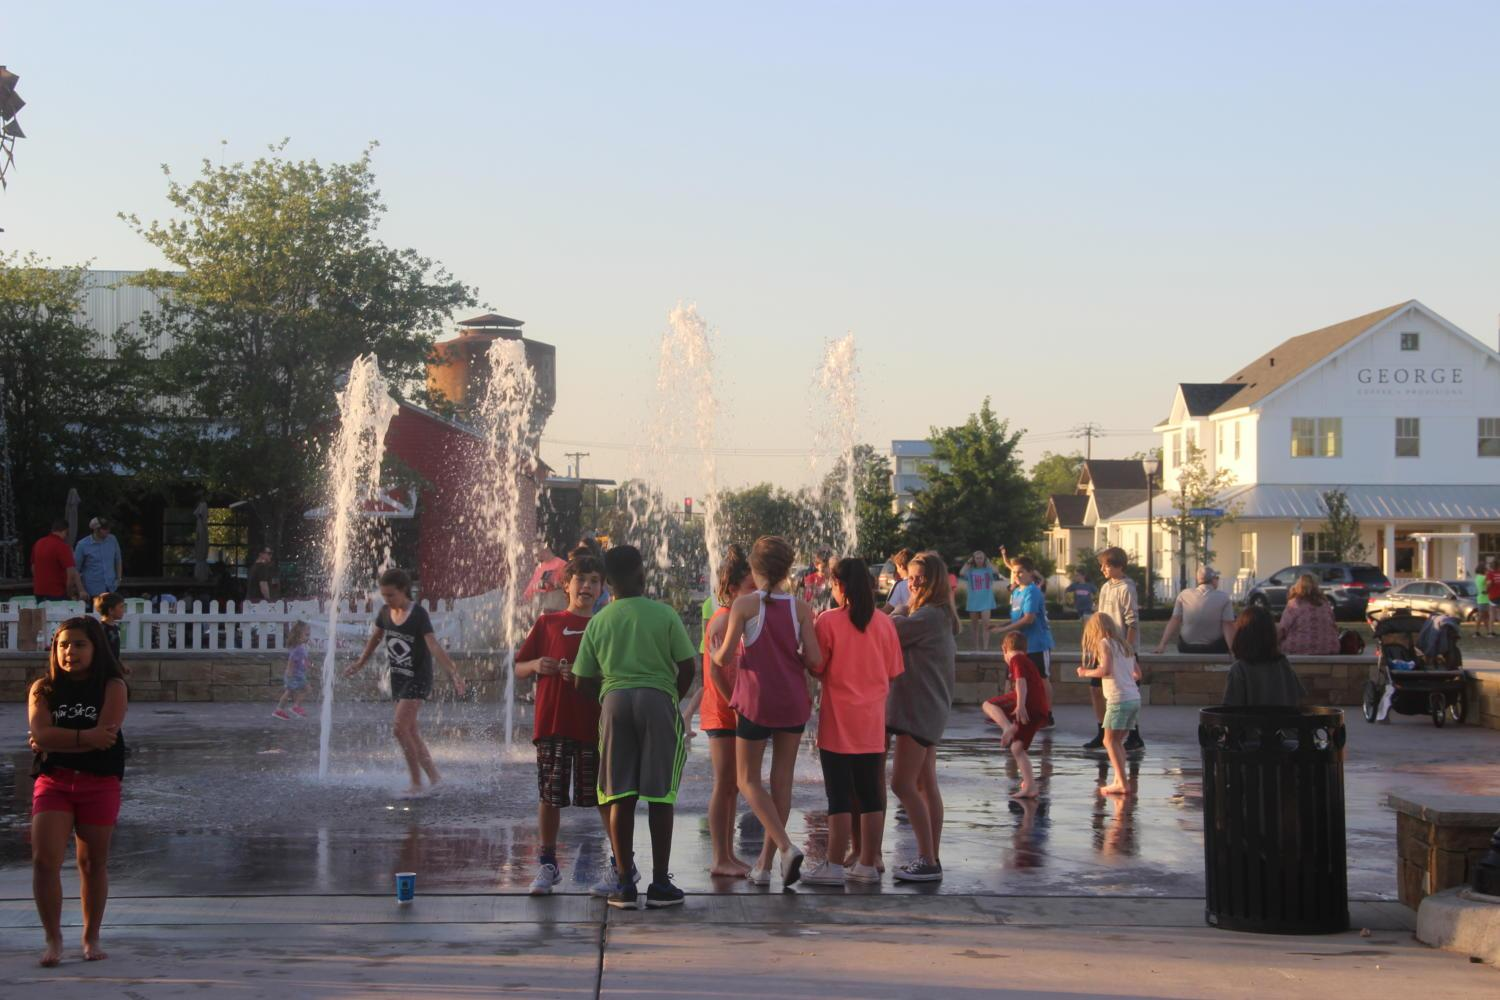 Kids+play+around+in+the+Main+Street+Interactive+Fountain+at+the+Square+of+Old+Town+Coppell+for+the+Concert+on+the+Lawn+last+night.+Many+kids+were+free+to+splash+in+the+water+during+the+event.